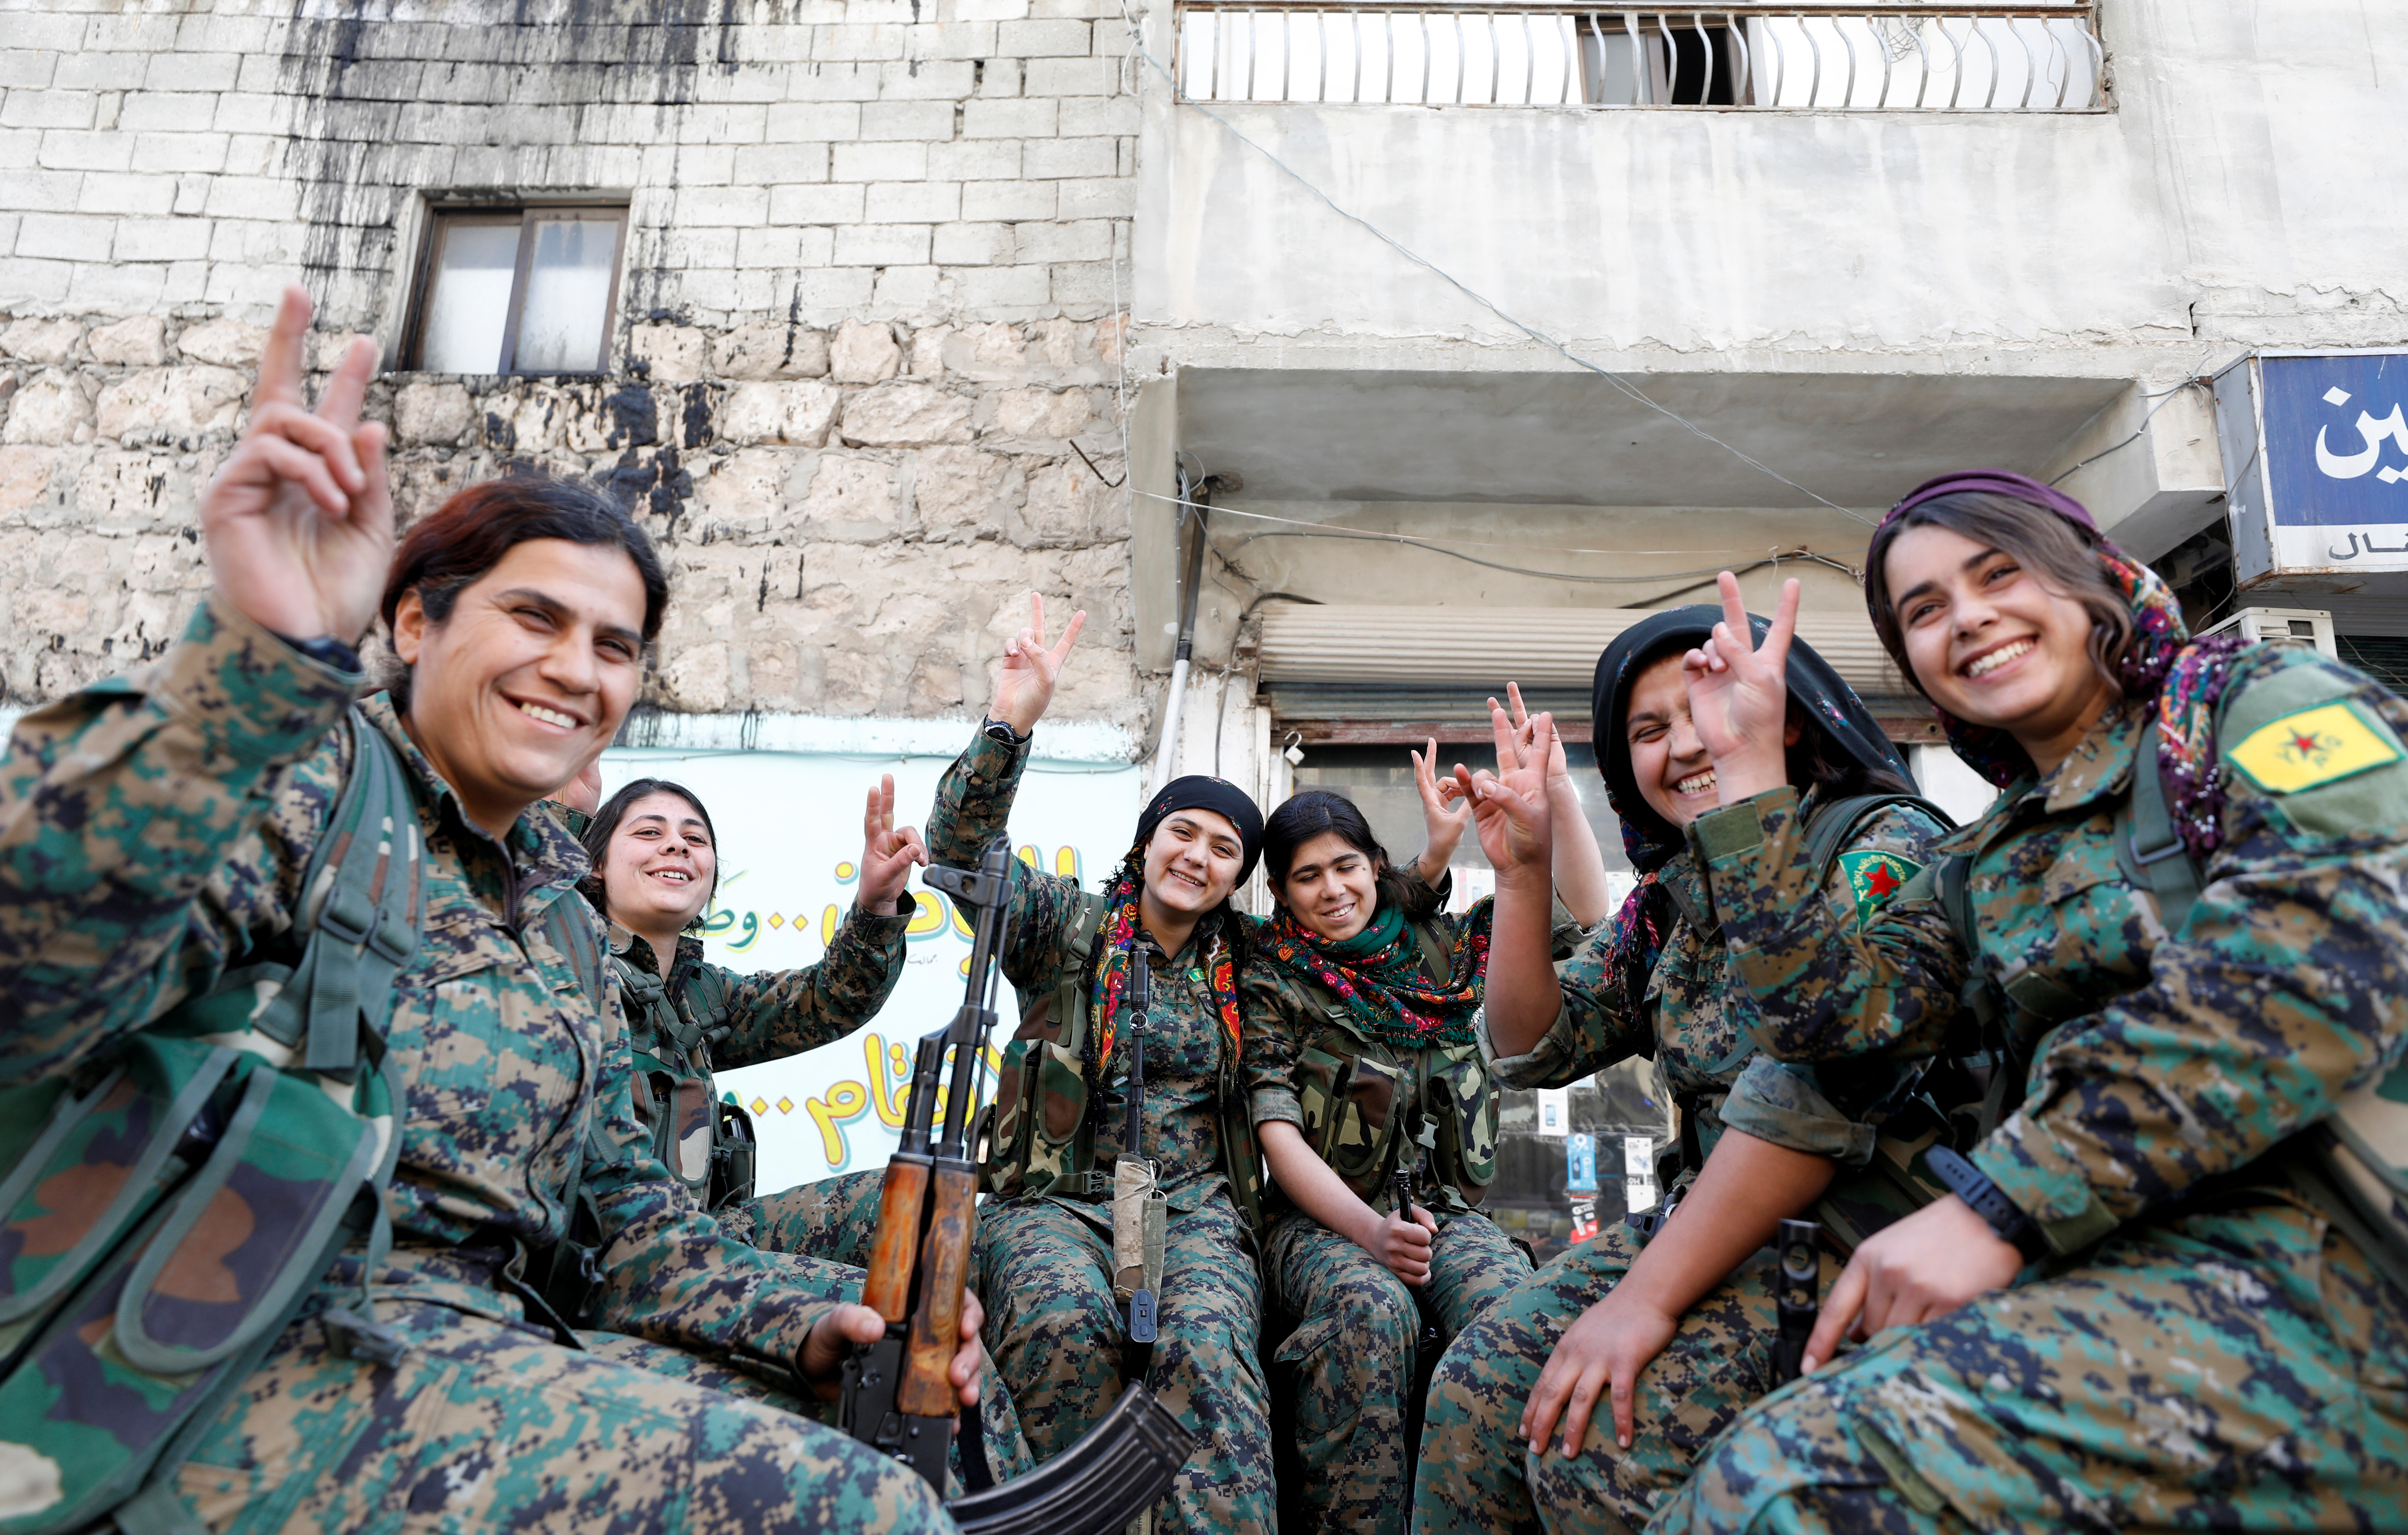 A semicircle of Kurdish female fighters of the Women's Protection Unit (YPJ) gesturing V for Victory symbols in the Sheikh Maksoud neighbourhood of Aleppo, Syria, on Feb. 7, 2018.